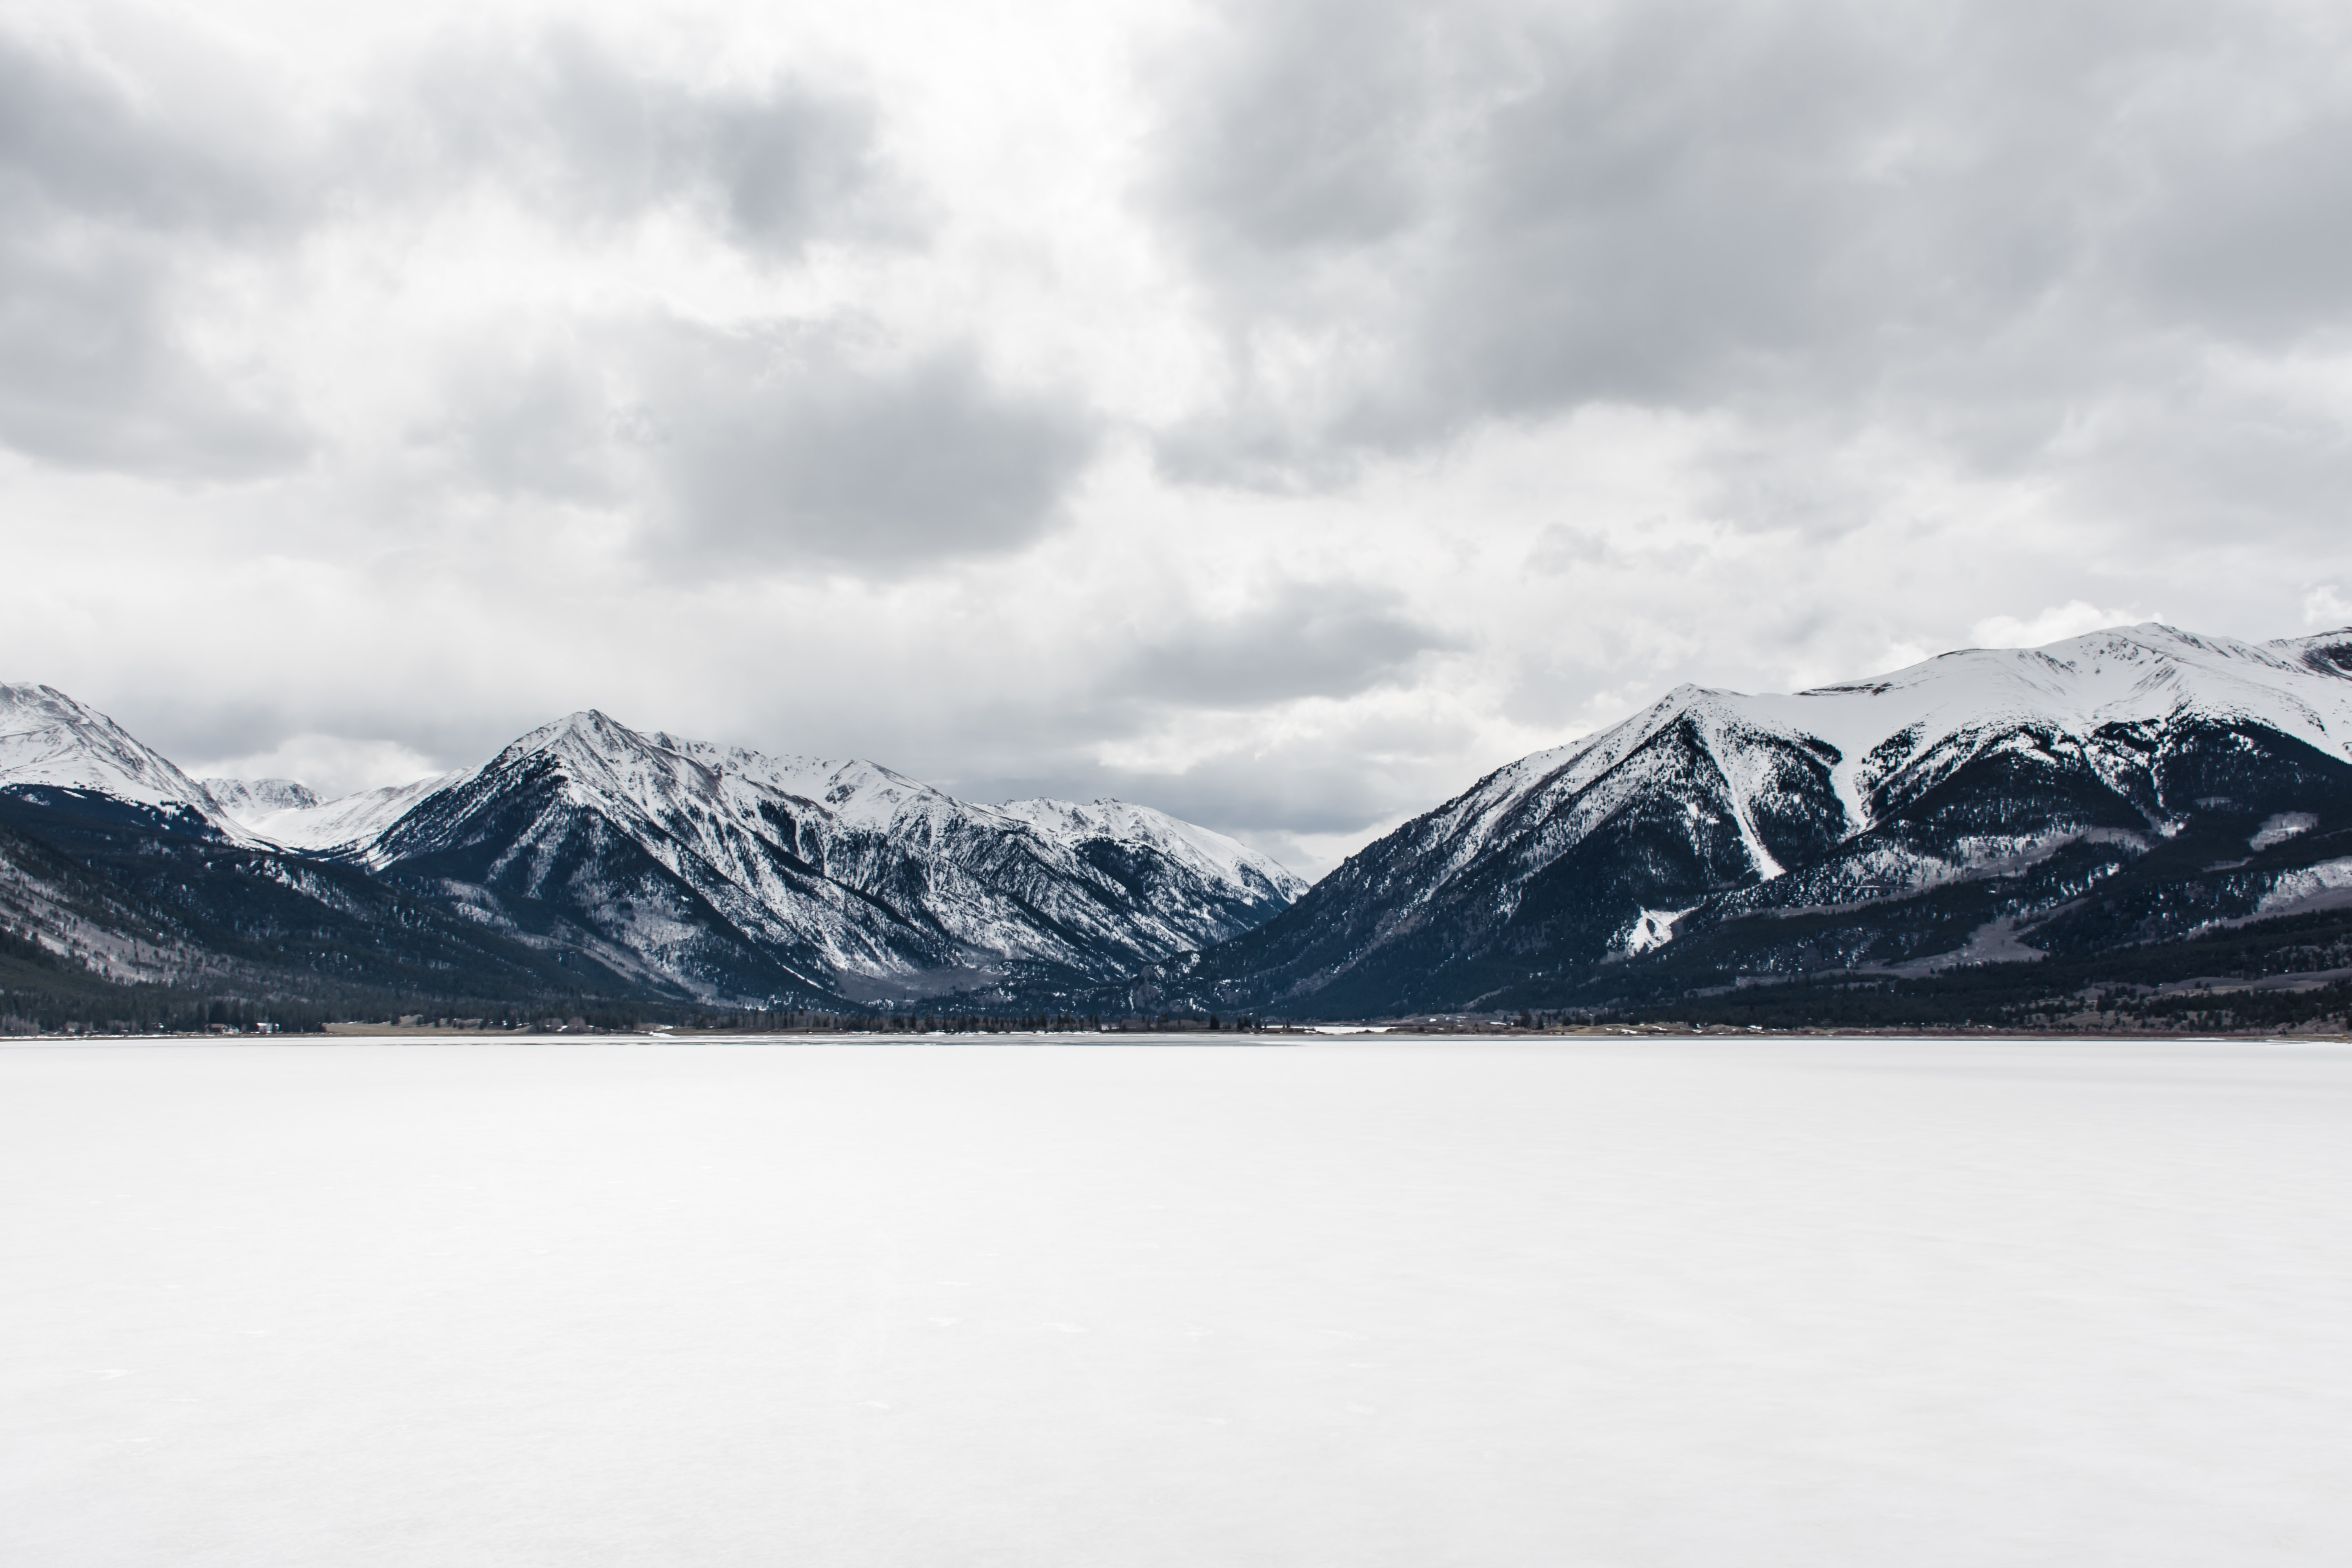 Cloudy overhead skies hovering over snowy mountain tops